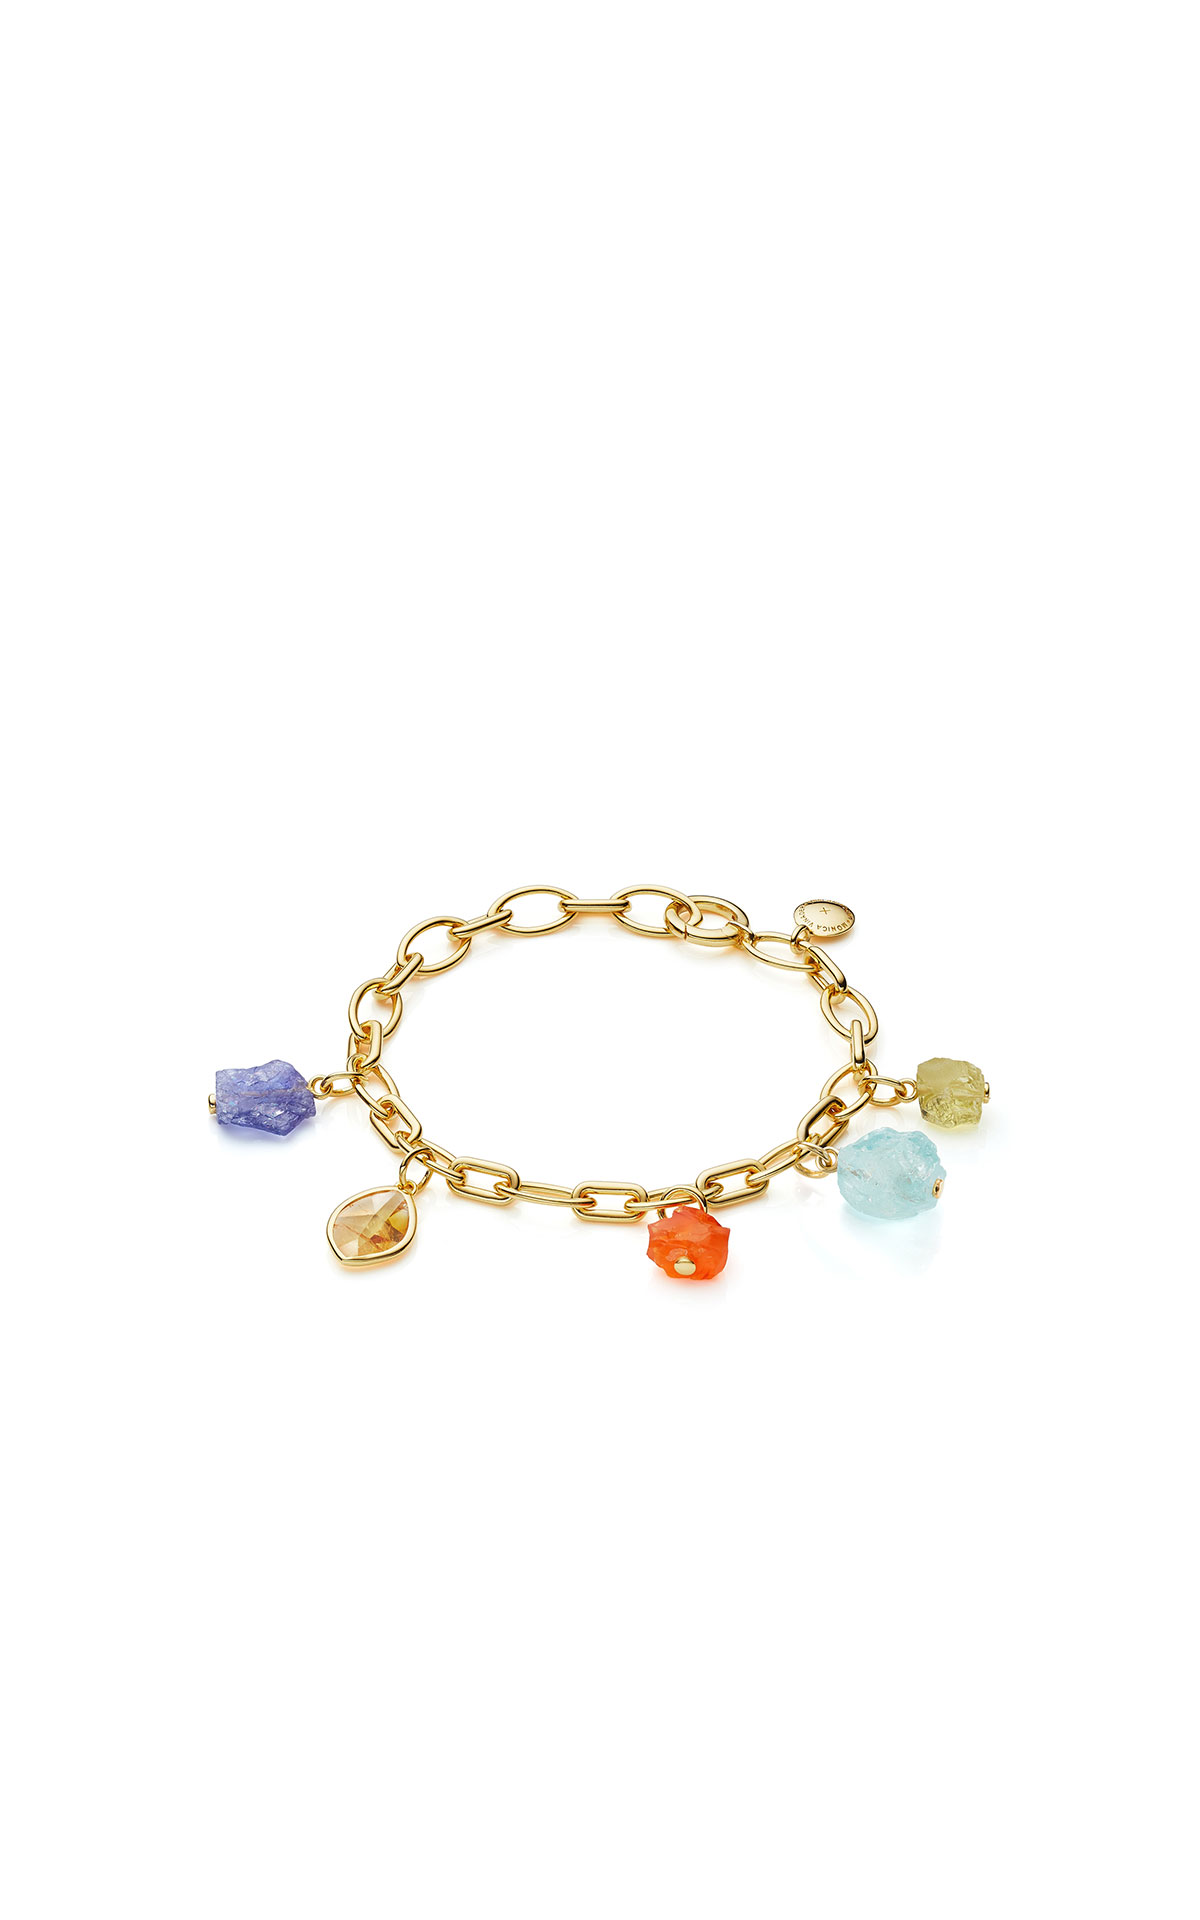 Monica Vinader Gold vermeil gemstone bracelet - mix from Bicester Village